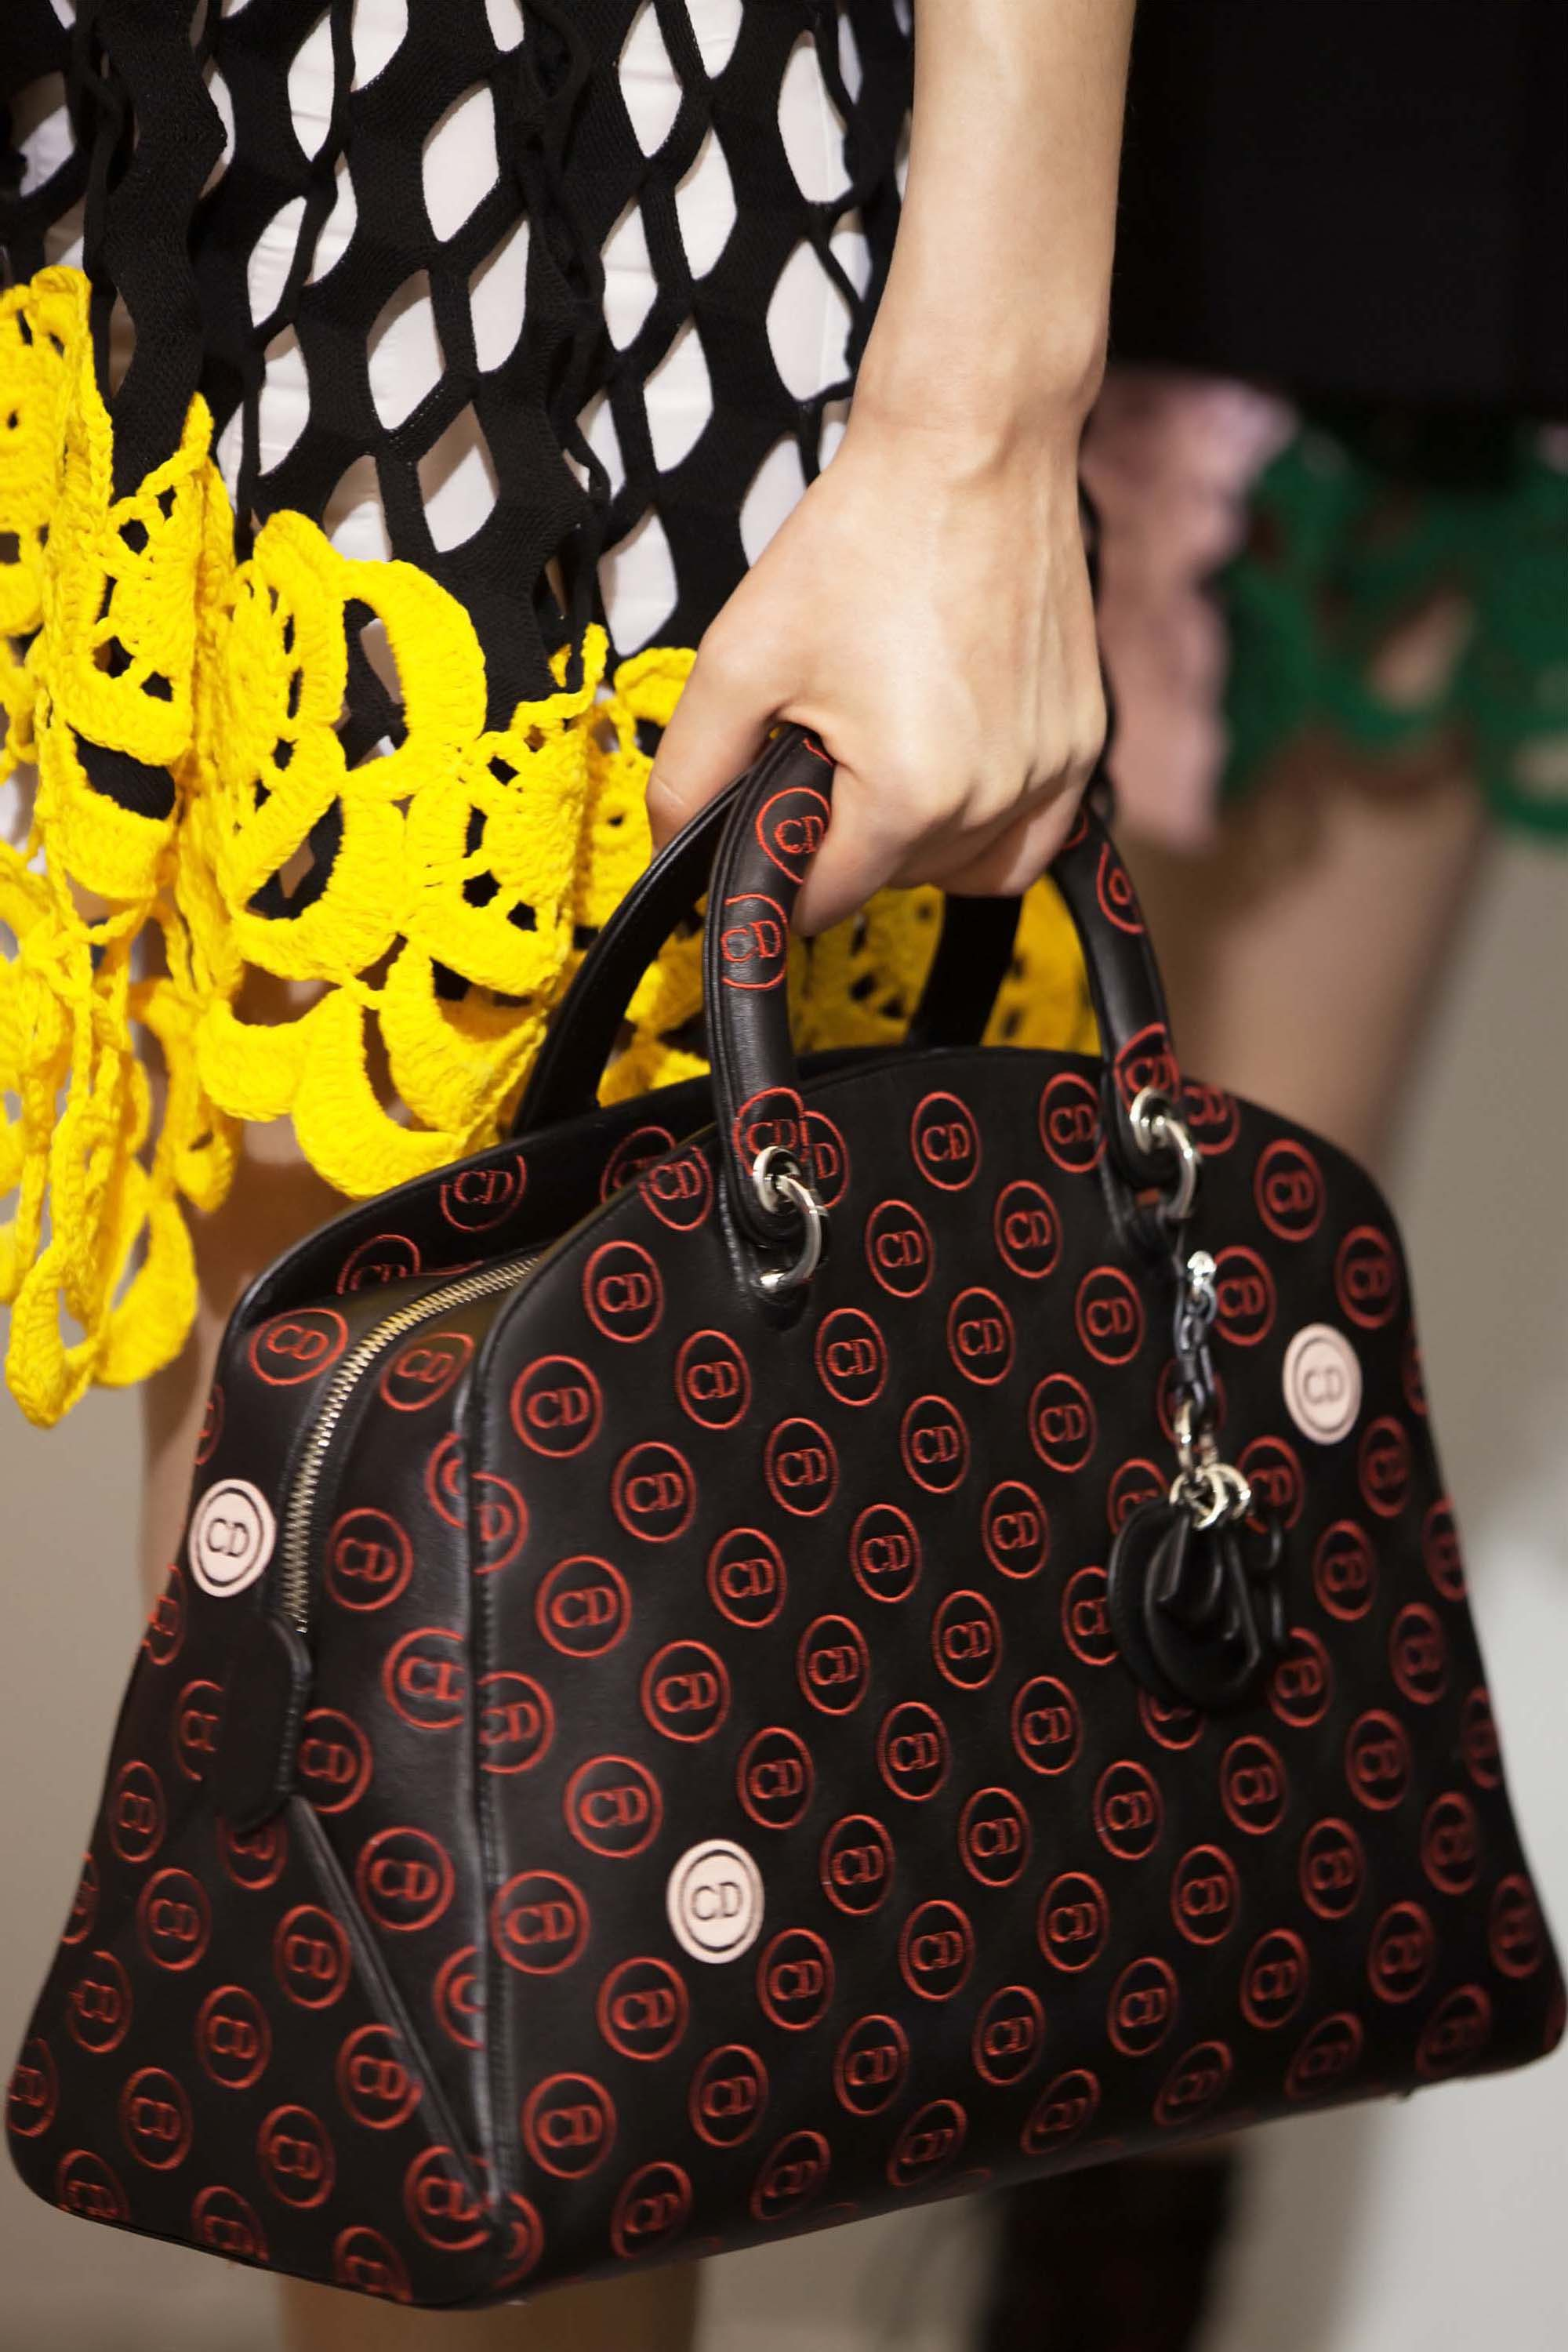 Dior-BlackRed-Logo-Patterned-City-Bag-Cr